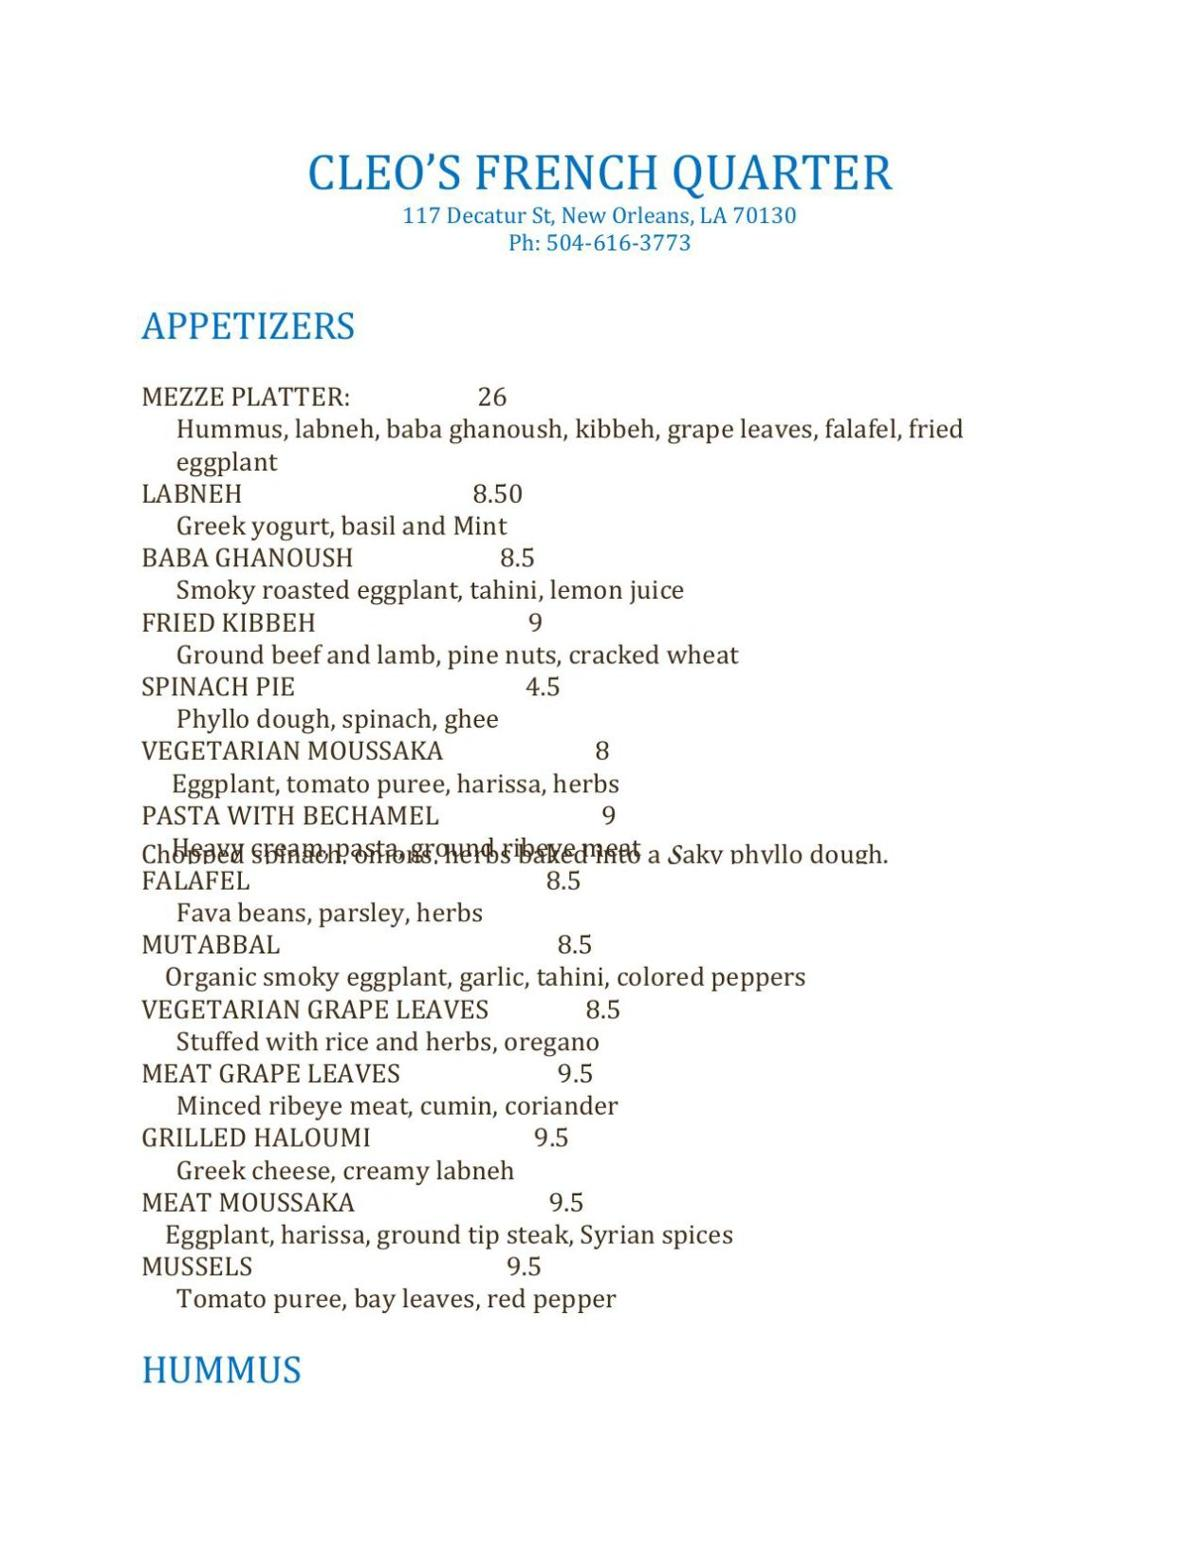 CLEO'S FRENCH QUARTER MENU